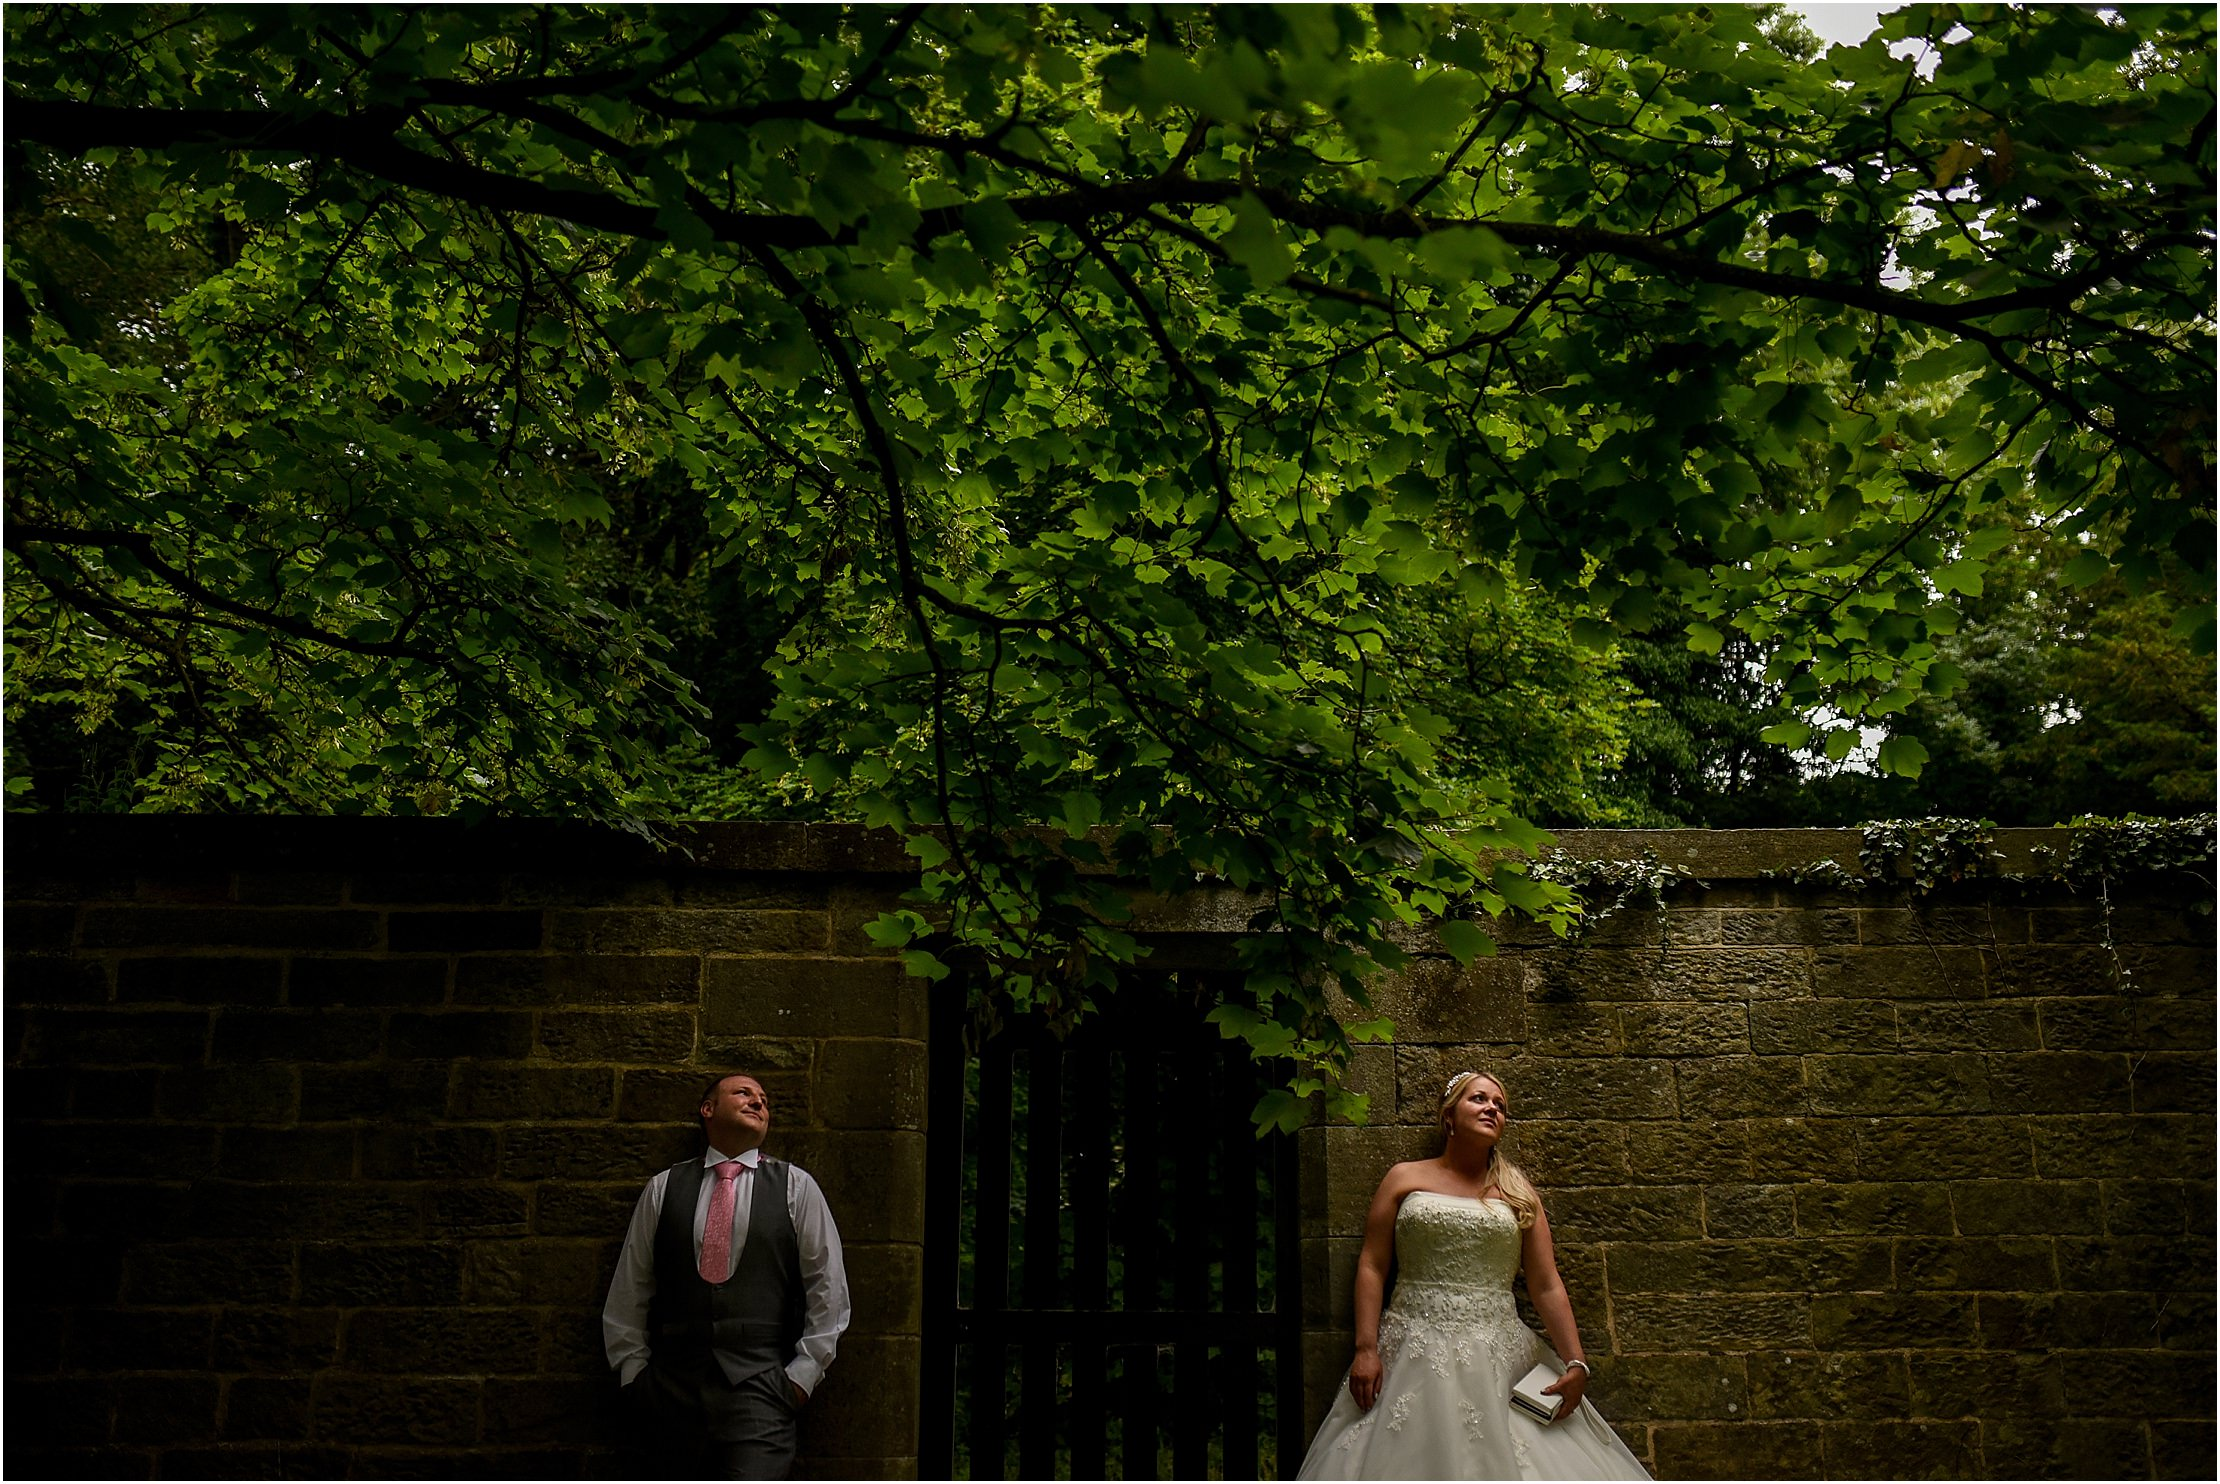 dan-wootton-wedding-photography-2015 - 134.jpg